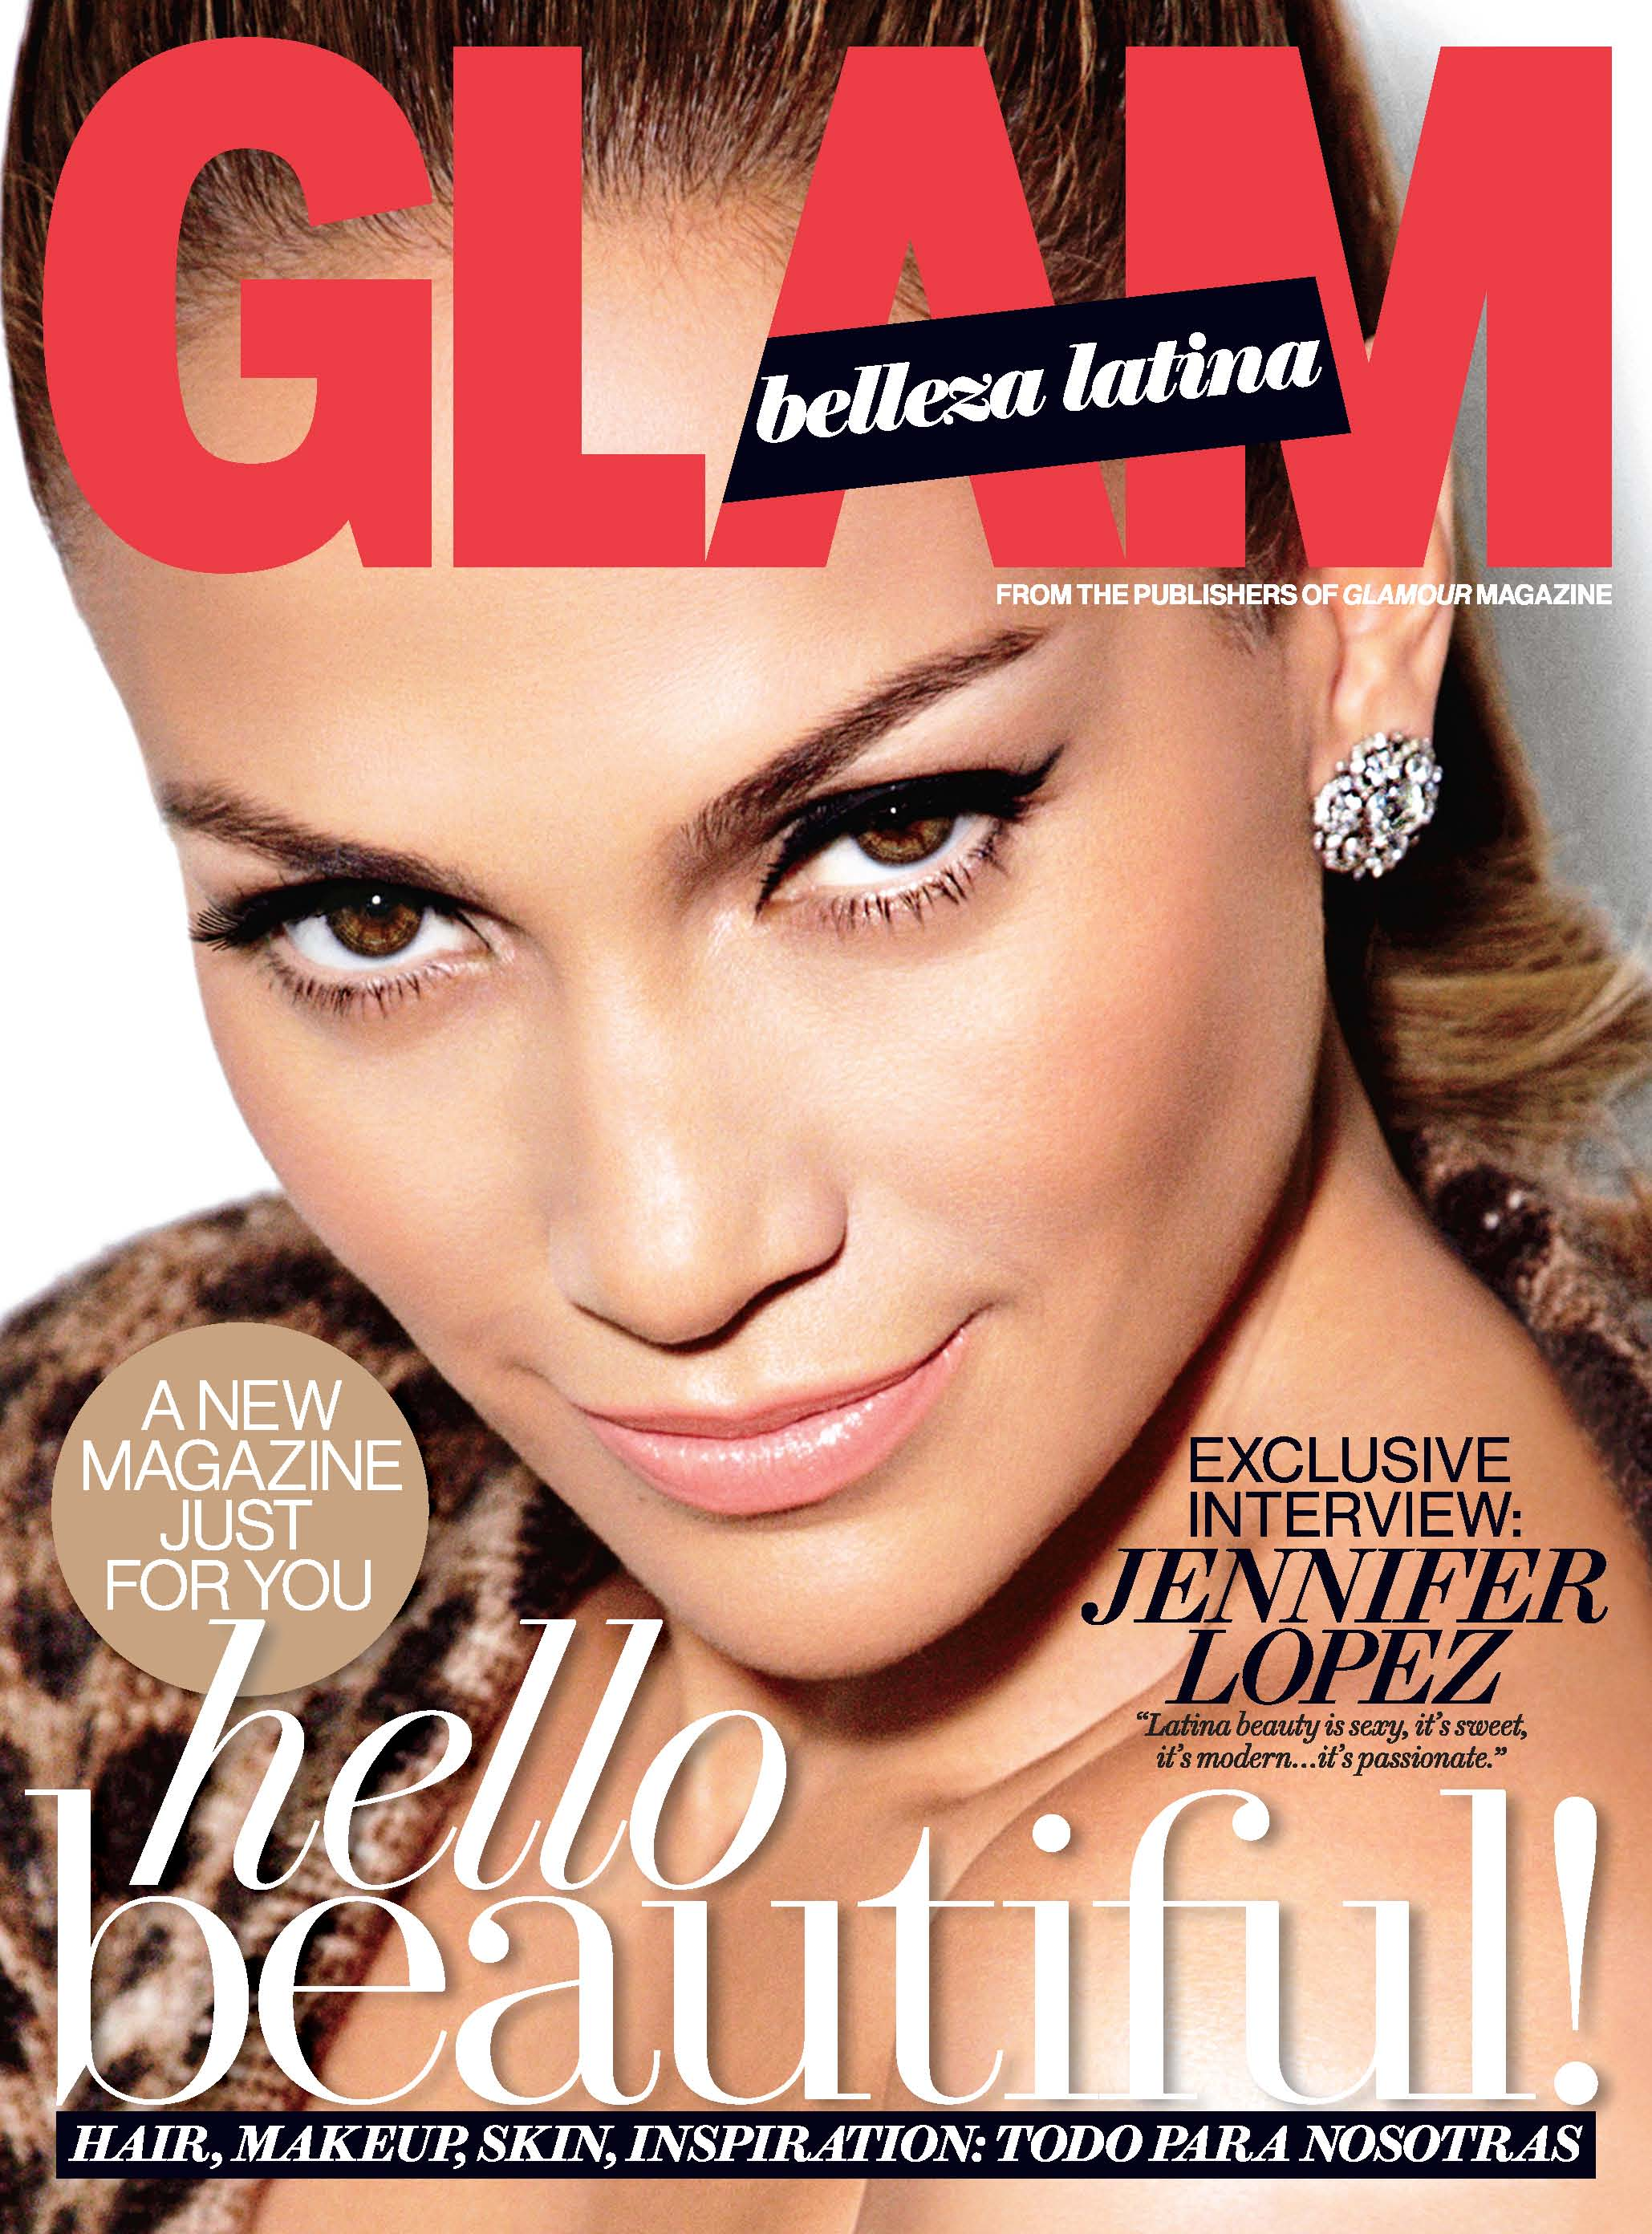 How Do You Launch A New Beauty Magazine For Latinas? With